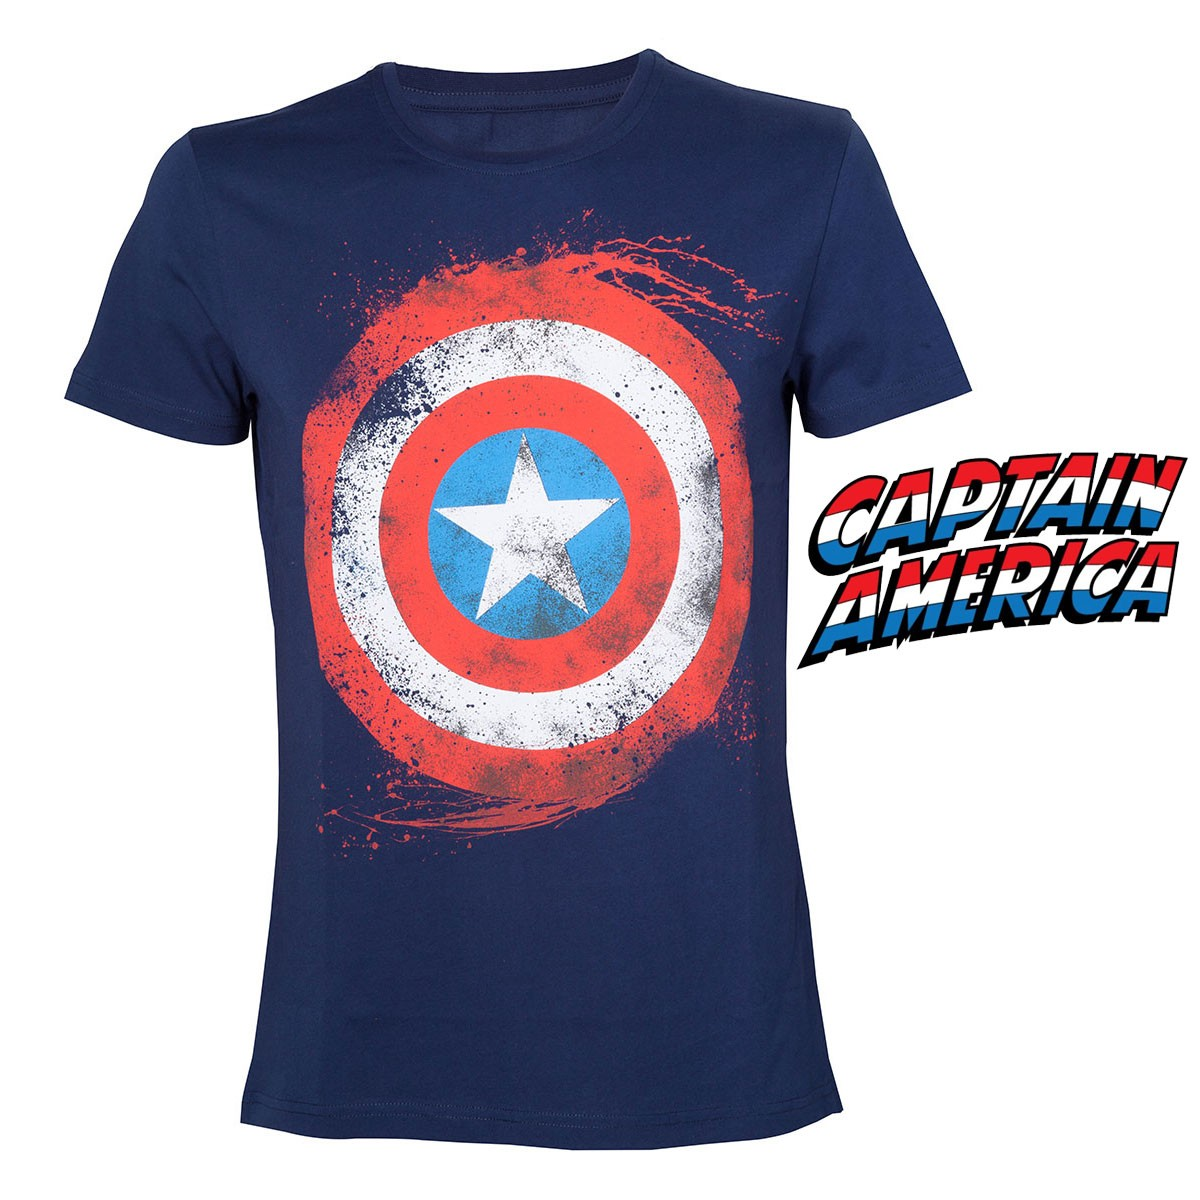 tee shirt captain america sous licence officielle marvel sur rapid cadeau. Black Bedroom Furniture Sets. Home Design Ideas